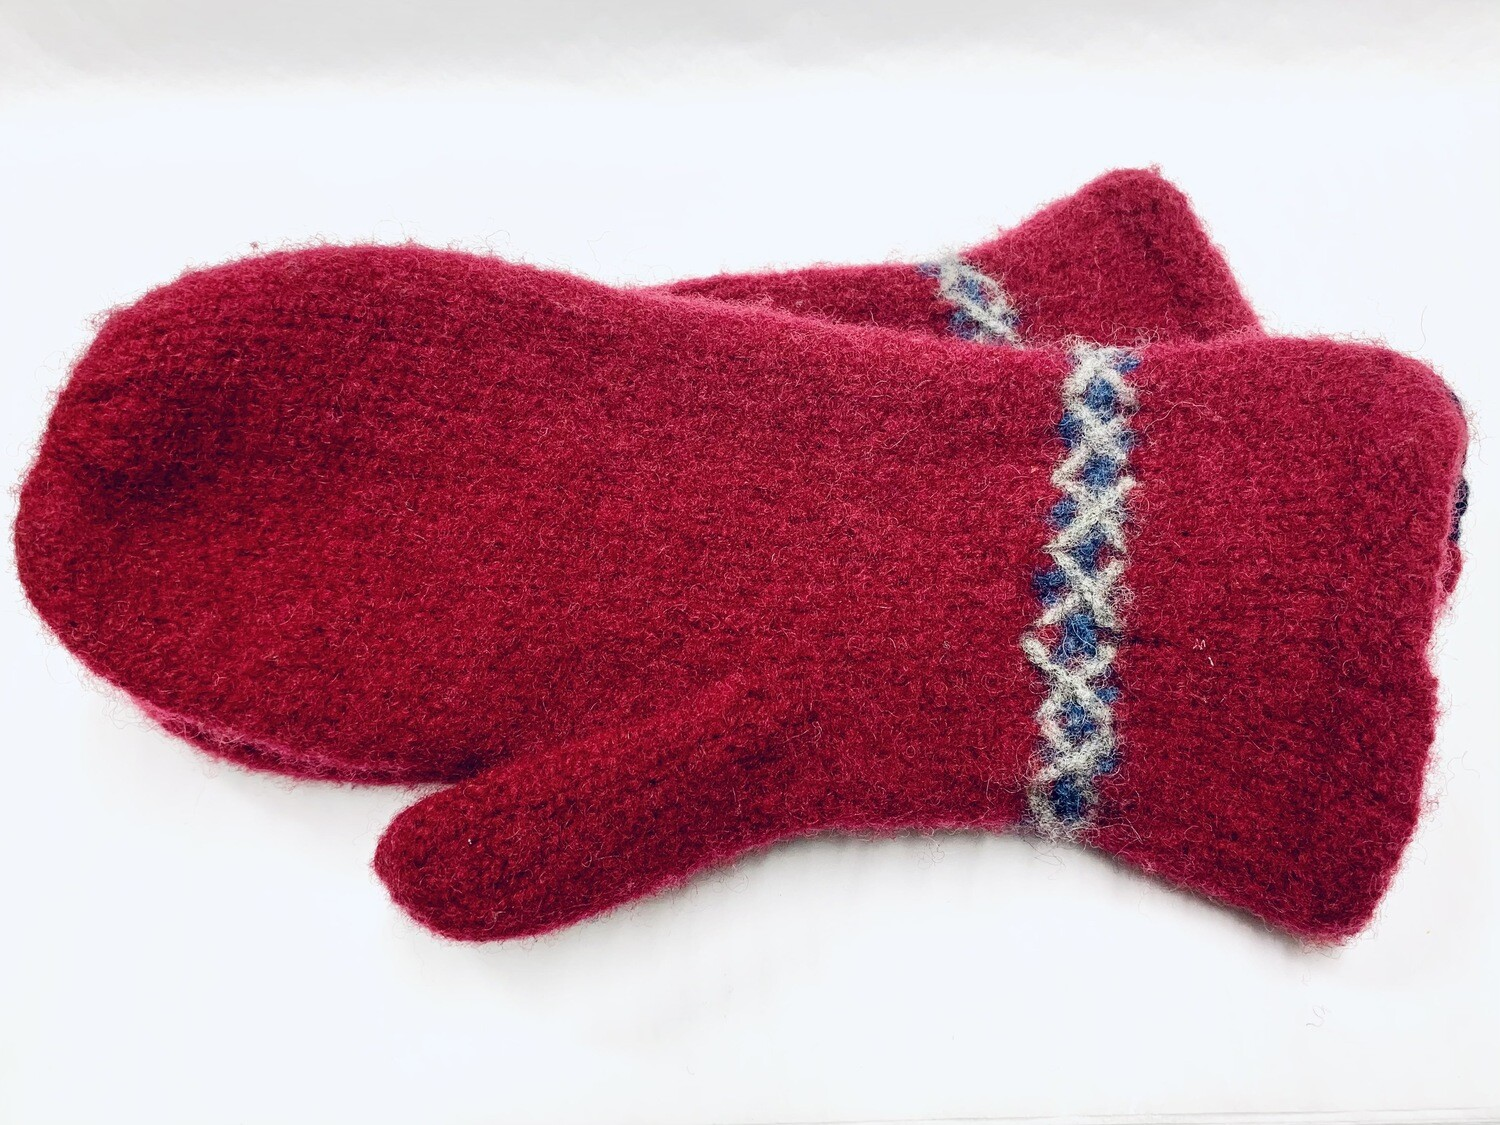 Maroon Boiled Mitten - Sheep's Clothing